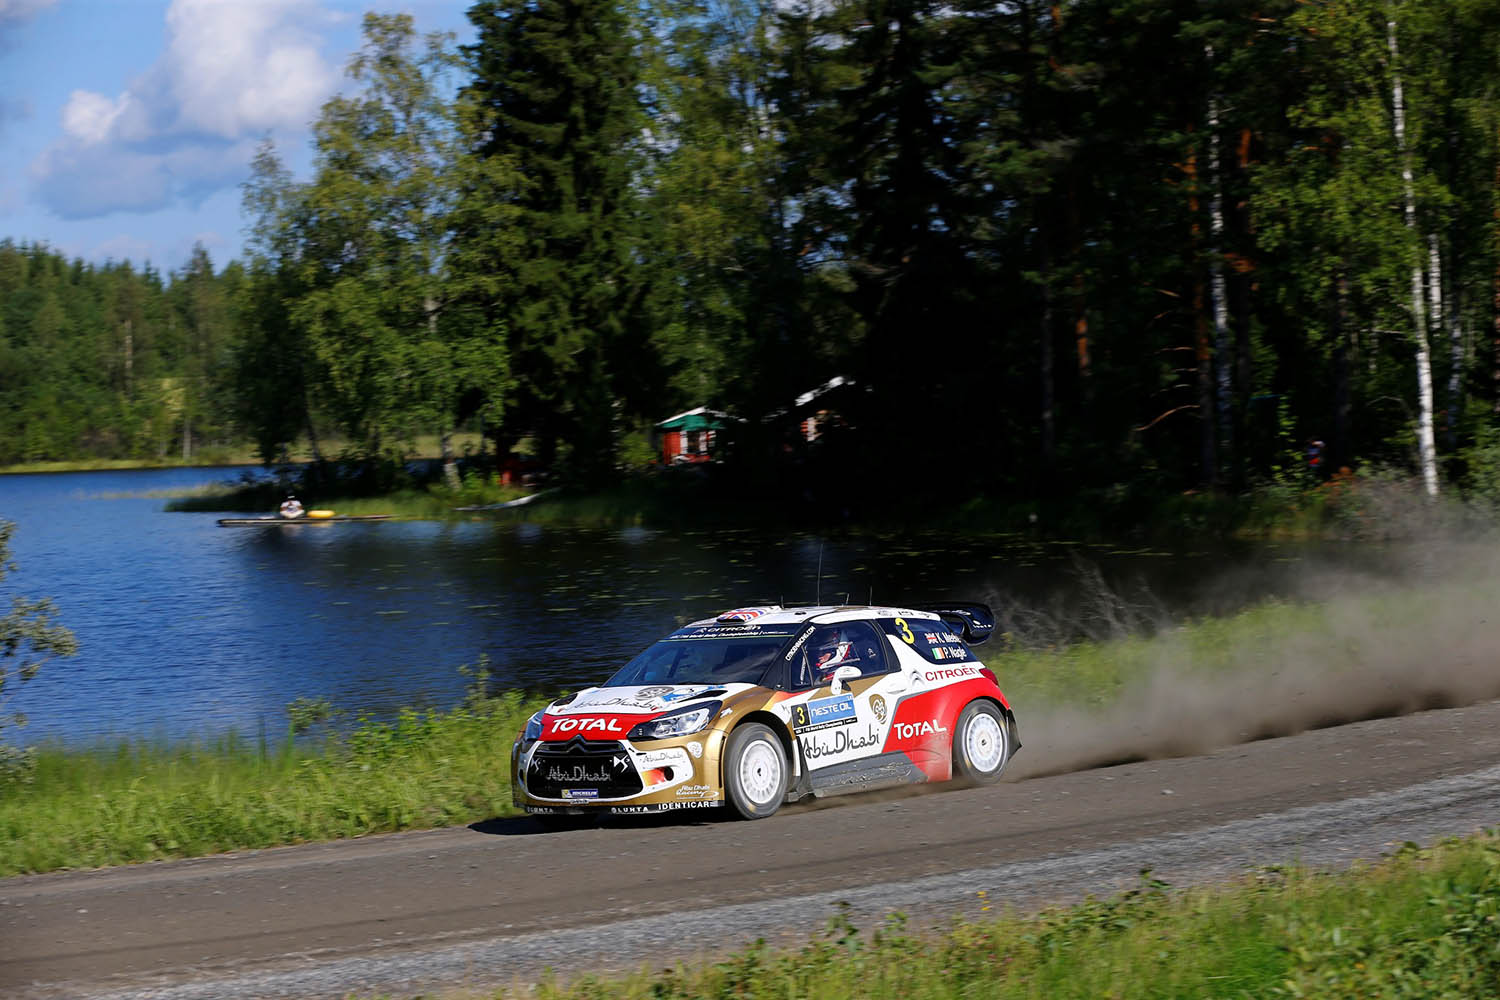 WRC - FINLAND RALLY 2014  - PHOTO : CITROEN RACING/AUSTRAL 03 Citroen Total Abu Dhabi WRT (FRA), MEEKE Kris NAGLE Paul, (GBR GBR), Citroen DS3 in action